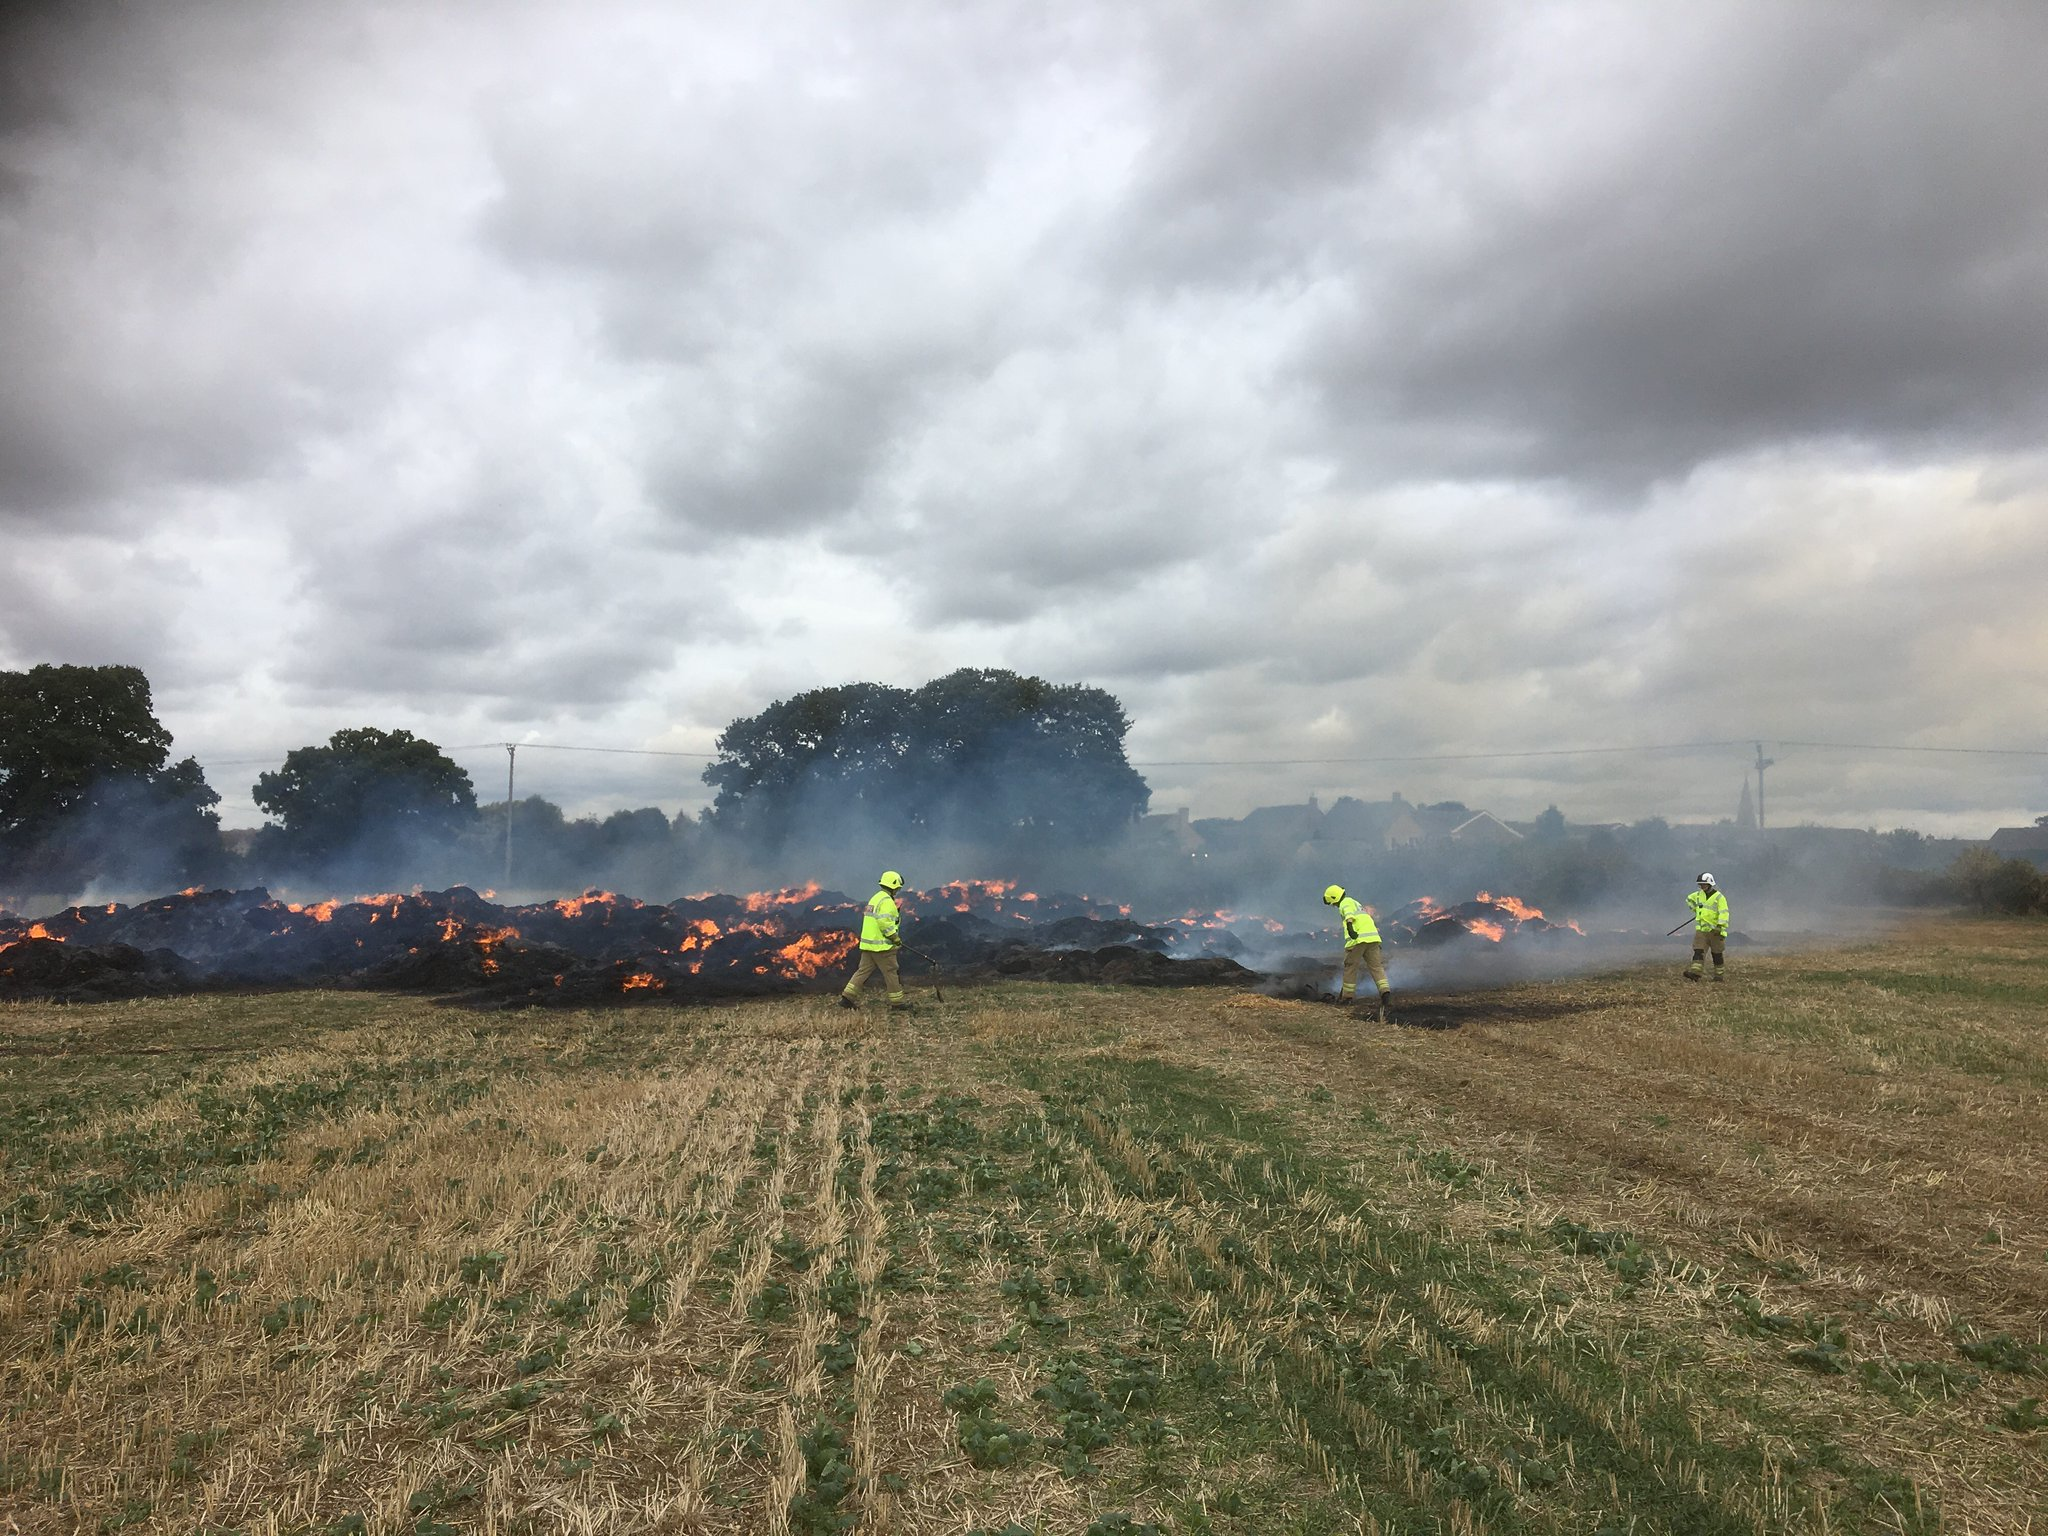 Villagers warned to close windows after straw bale fire causes plume of smoke